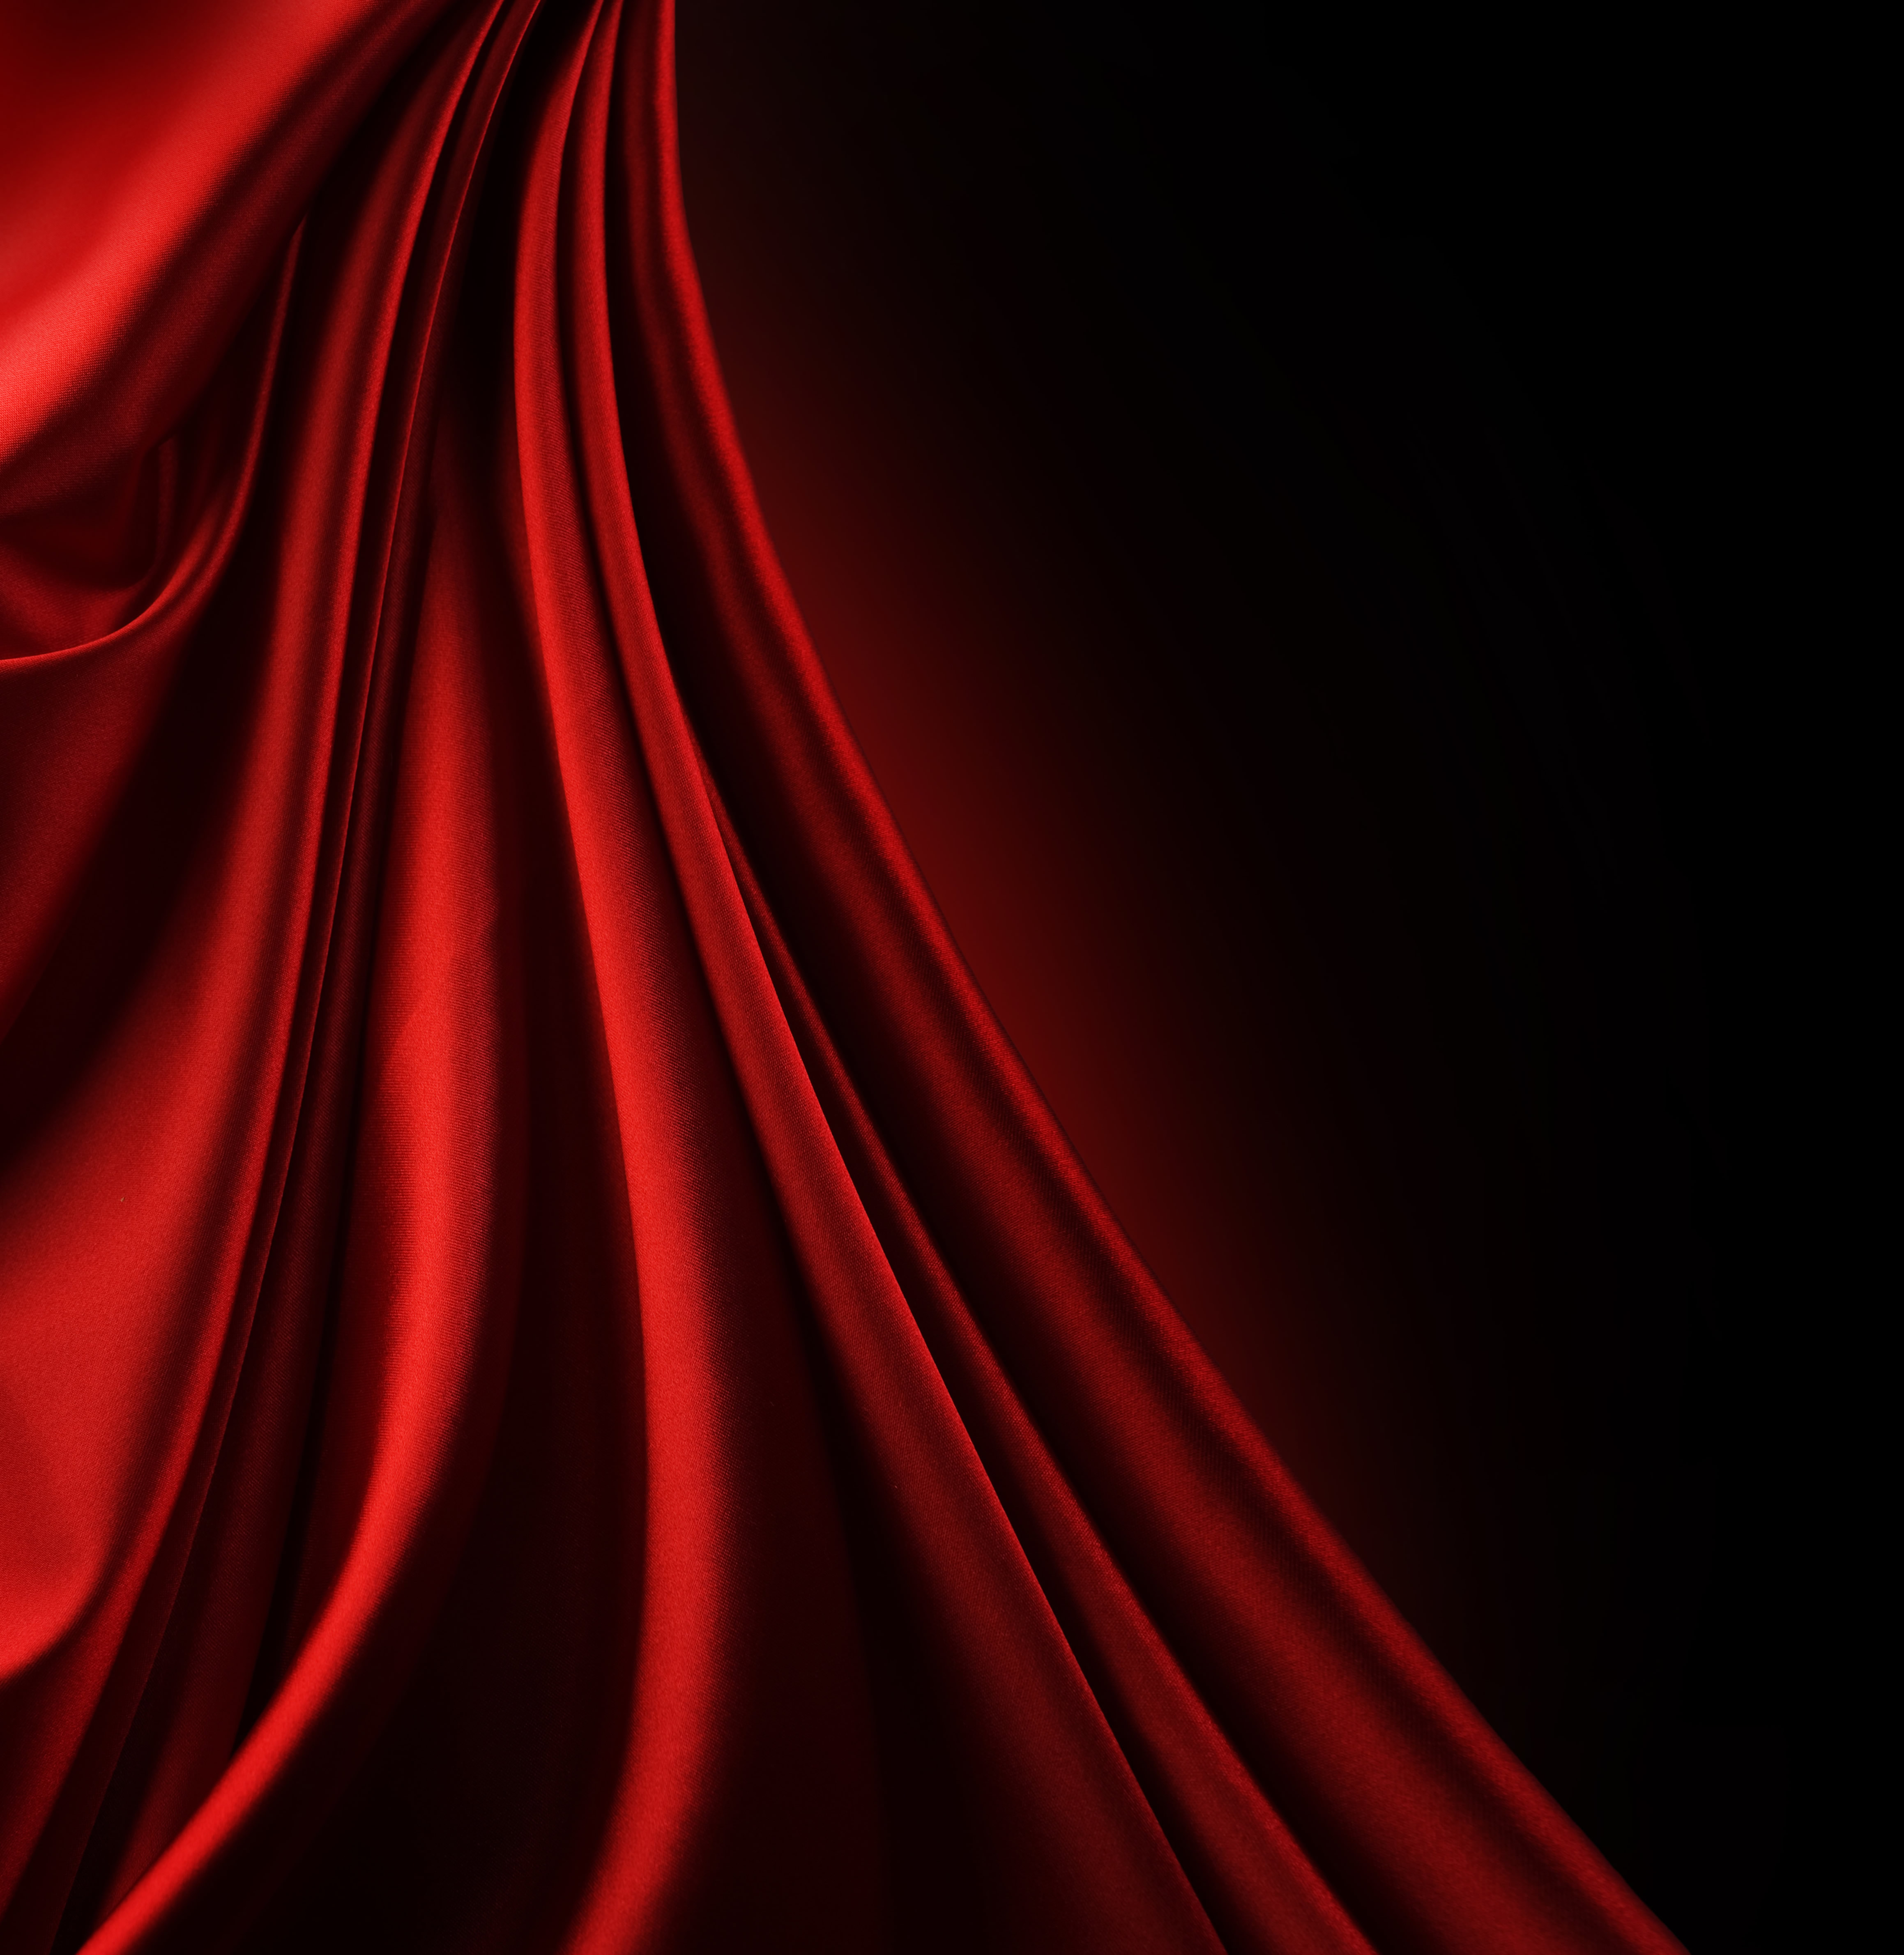 Cloth Fabric Texture Background Download Photos